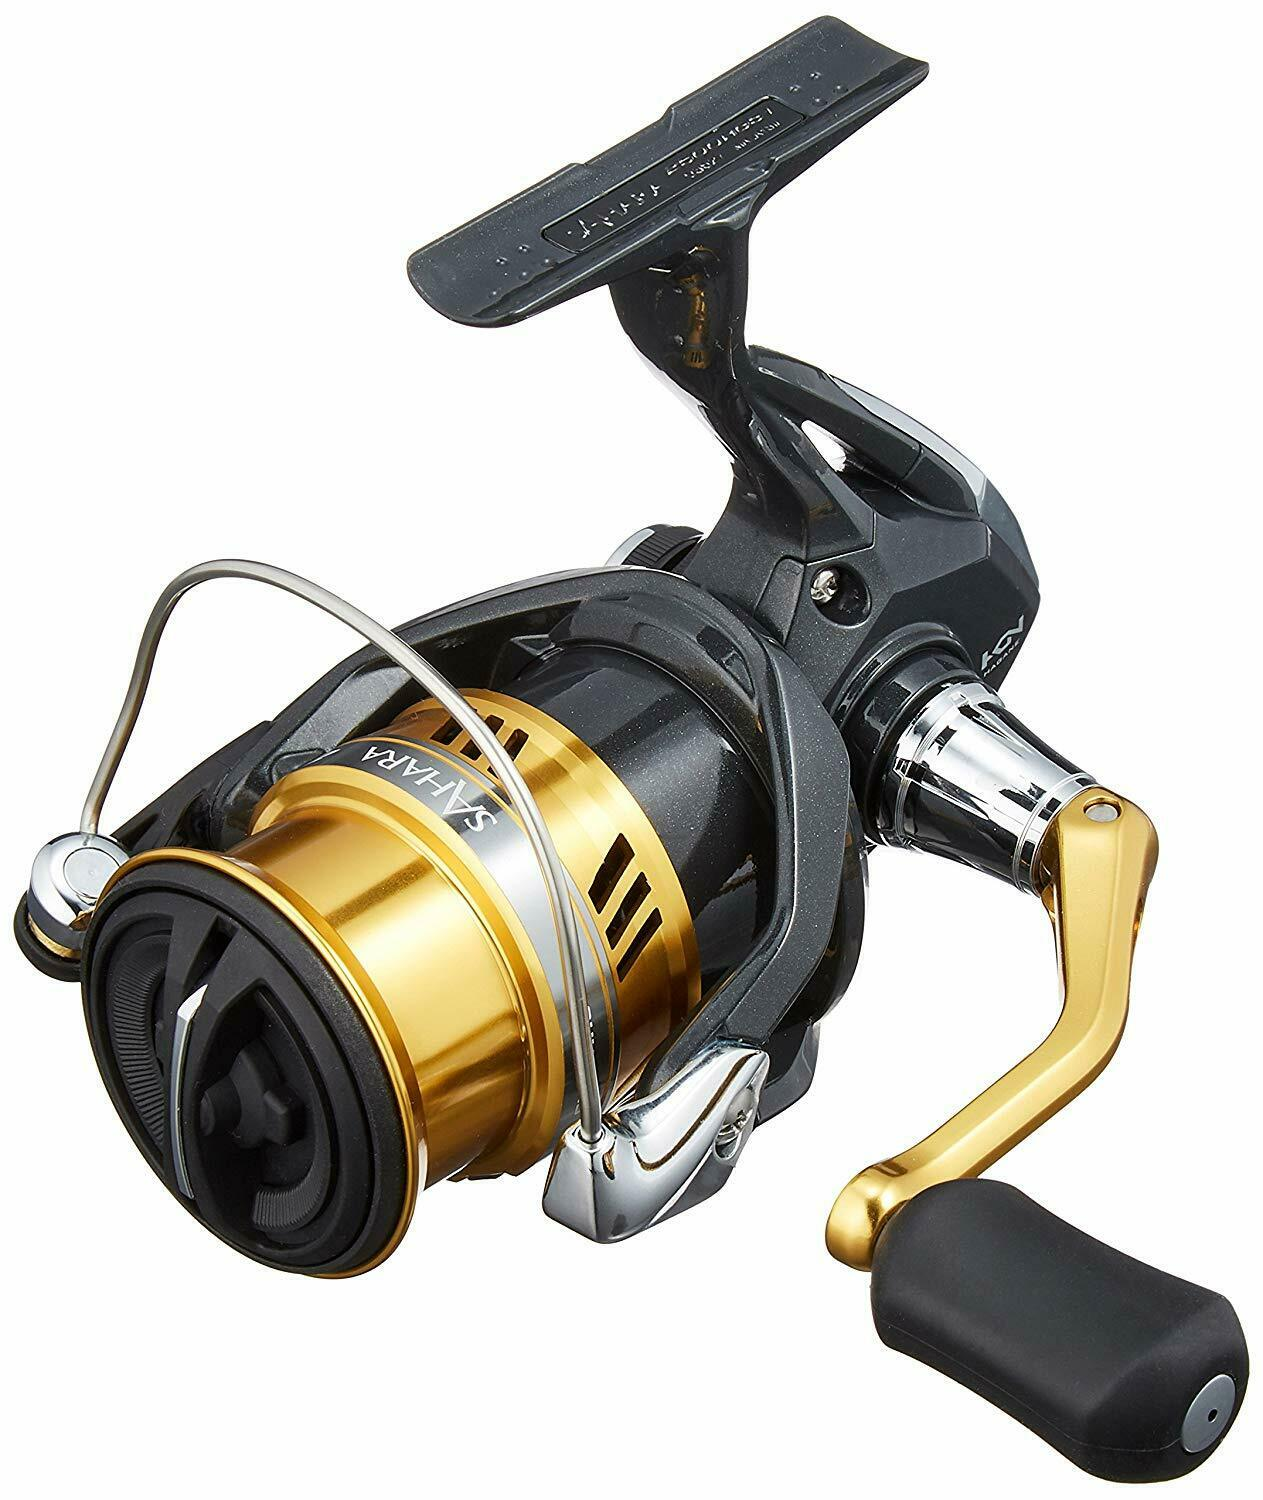 Spinning Reel 17 Sahara 2500HGS SHIMANO From Stylish anglers